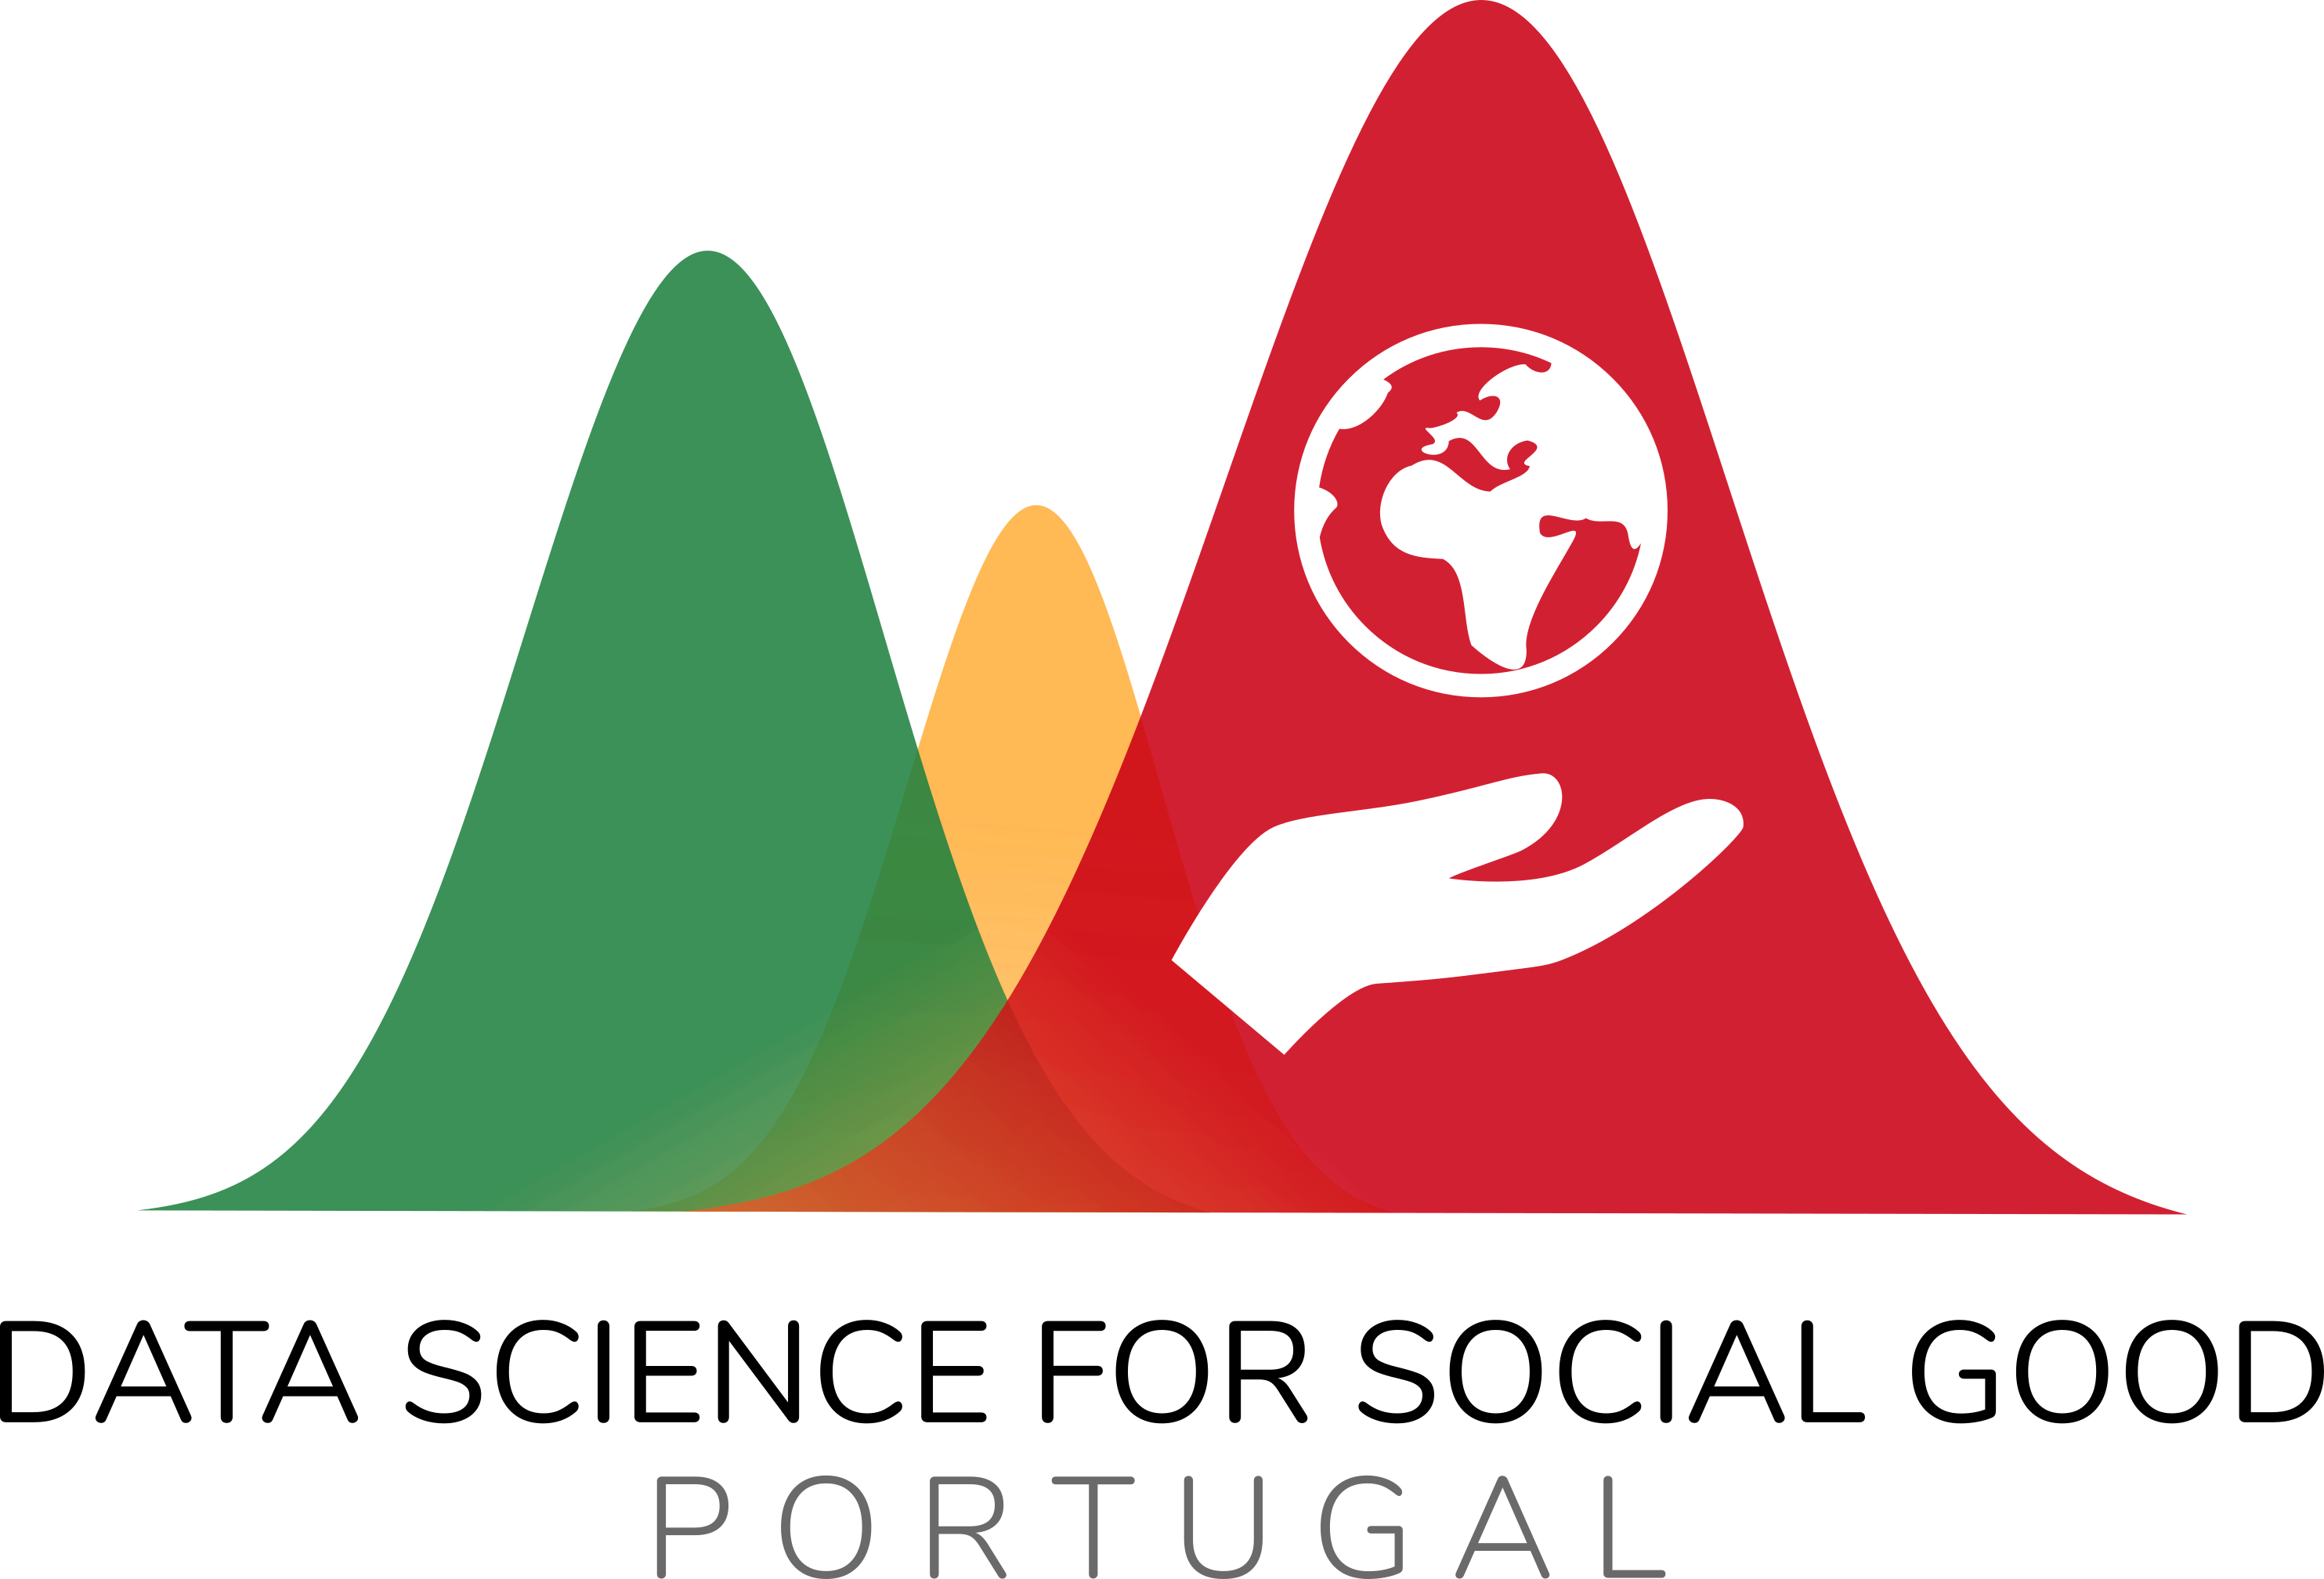 Data Science for Social Good Portugal